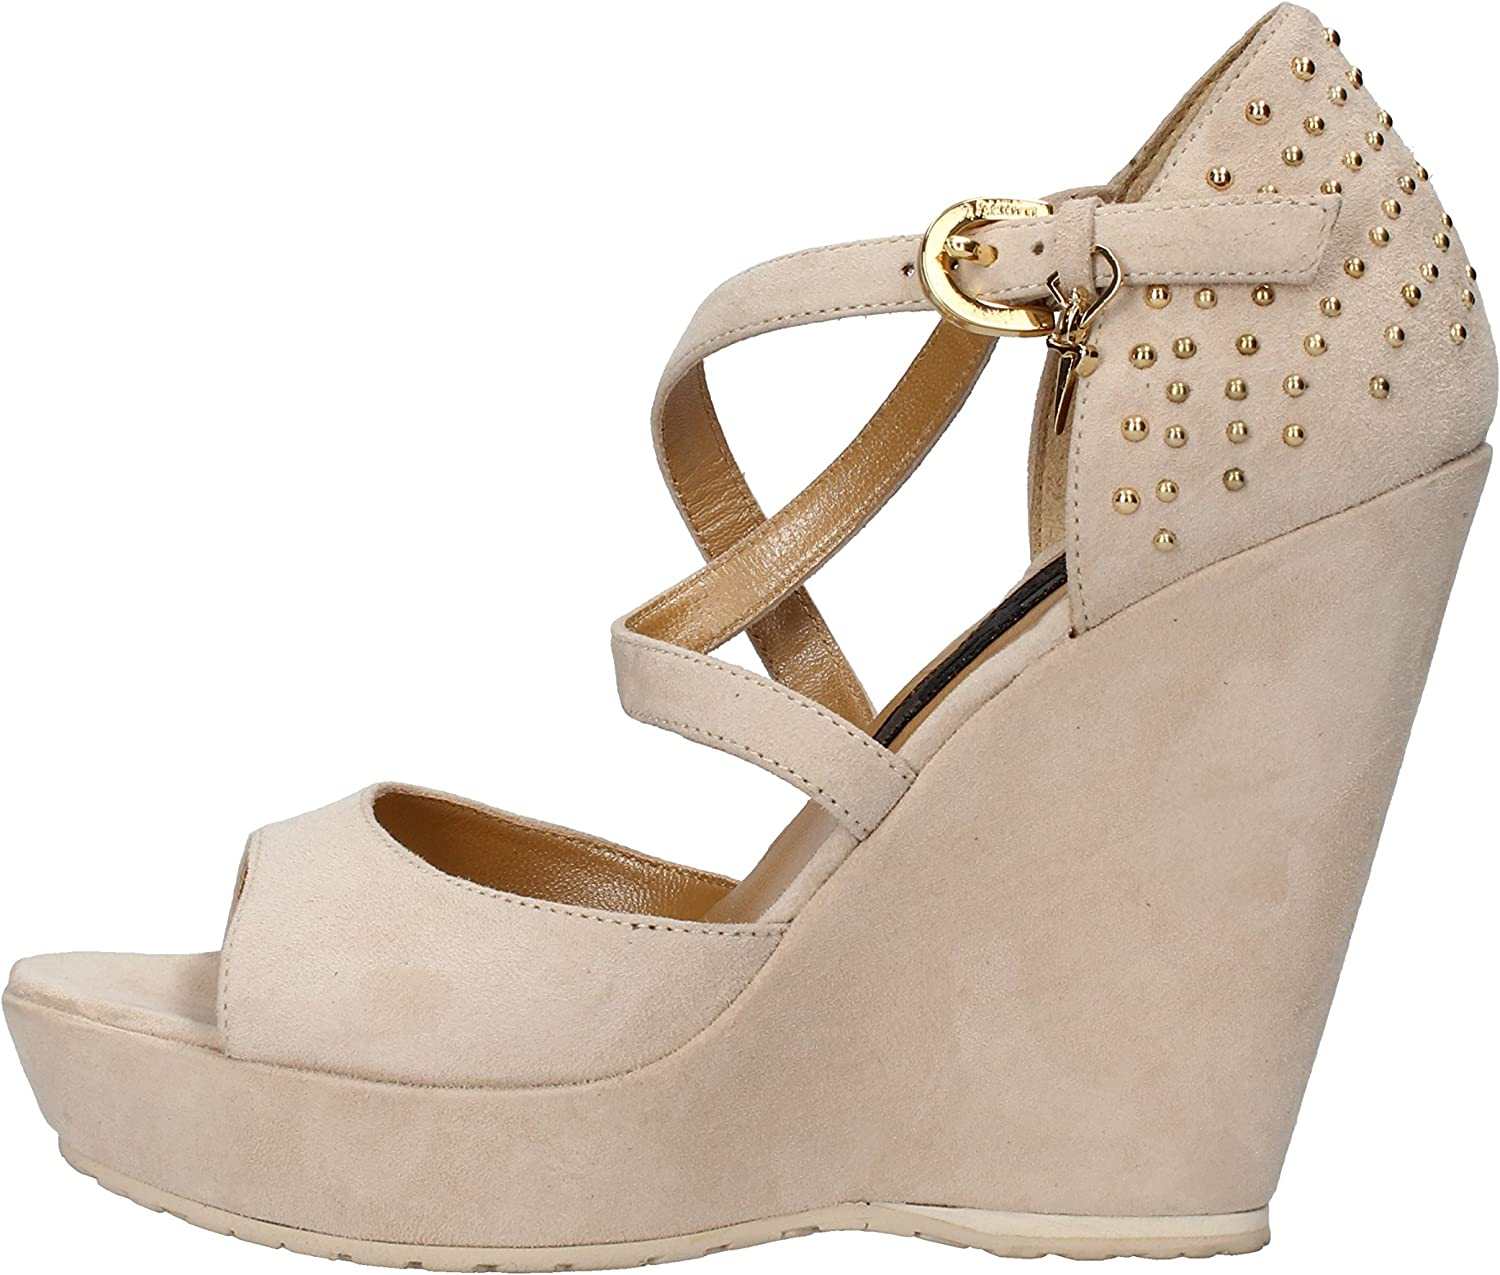 CESARE PACIOTTI 4US Wedges-Sandals Womens Suede Beige